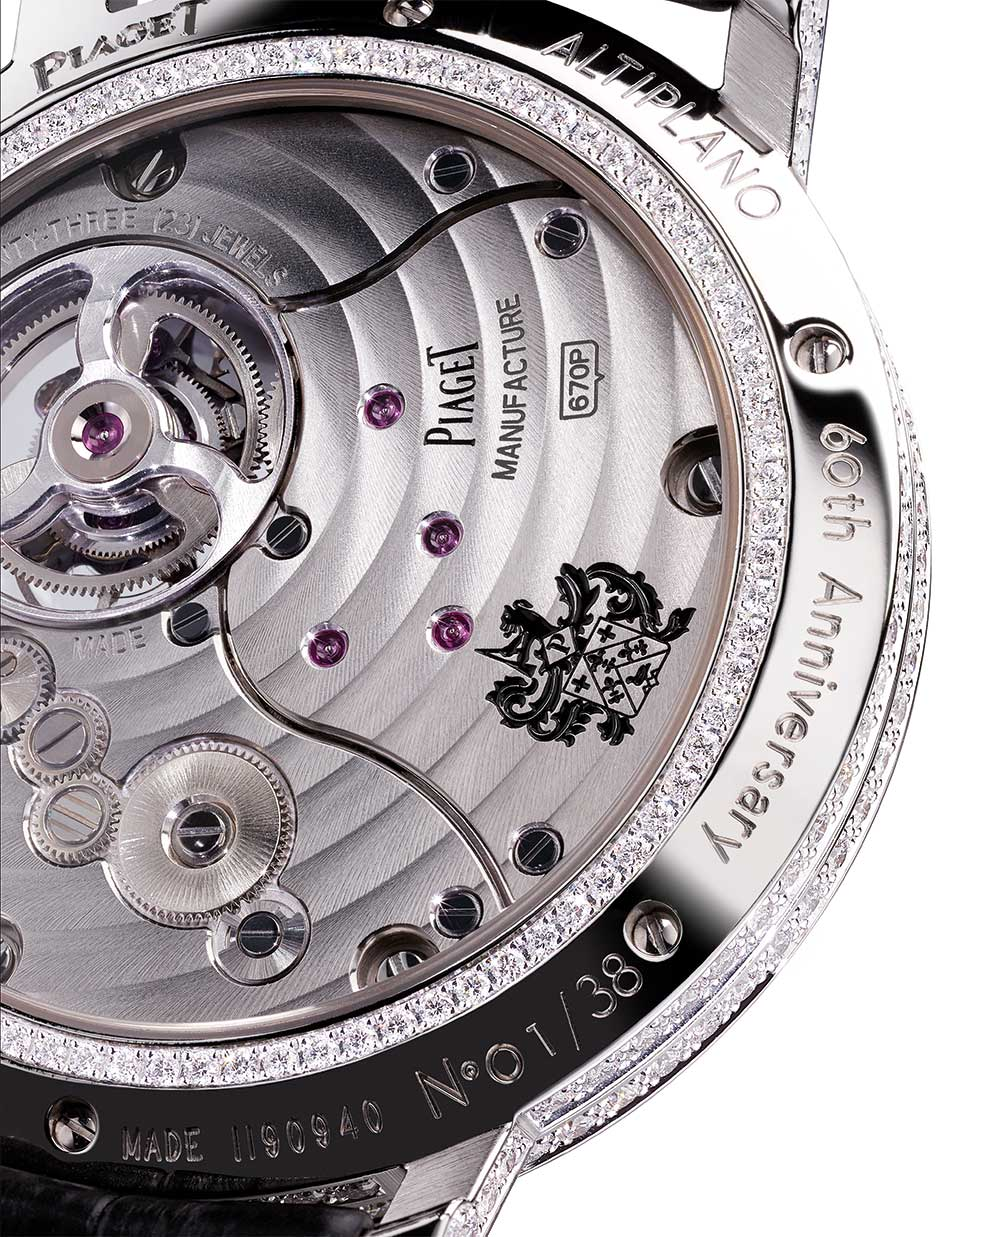 Piaget Altiplano Tourbillon High Jewellery G0A42204, caseback